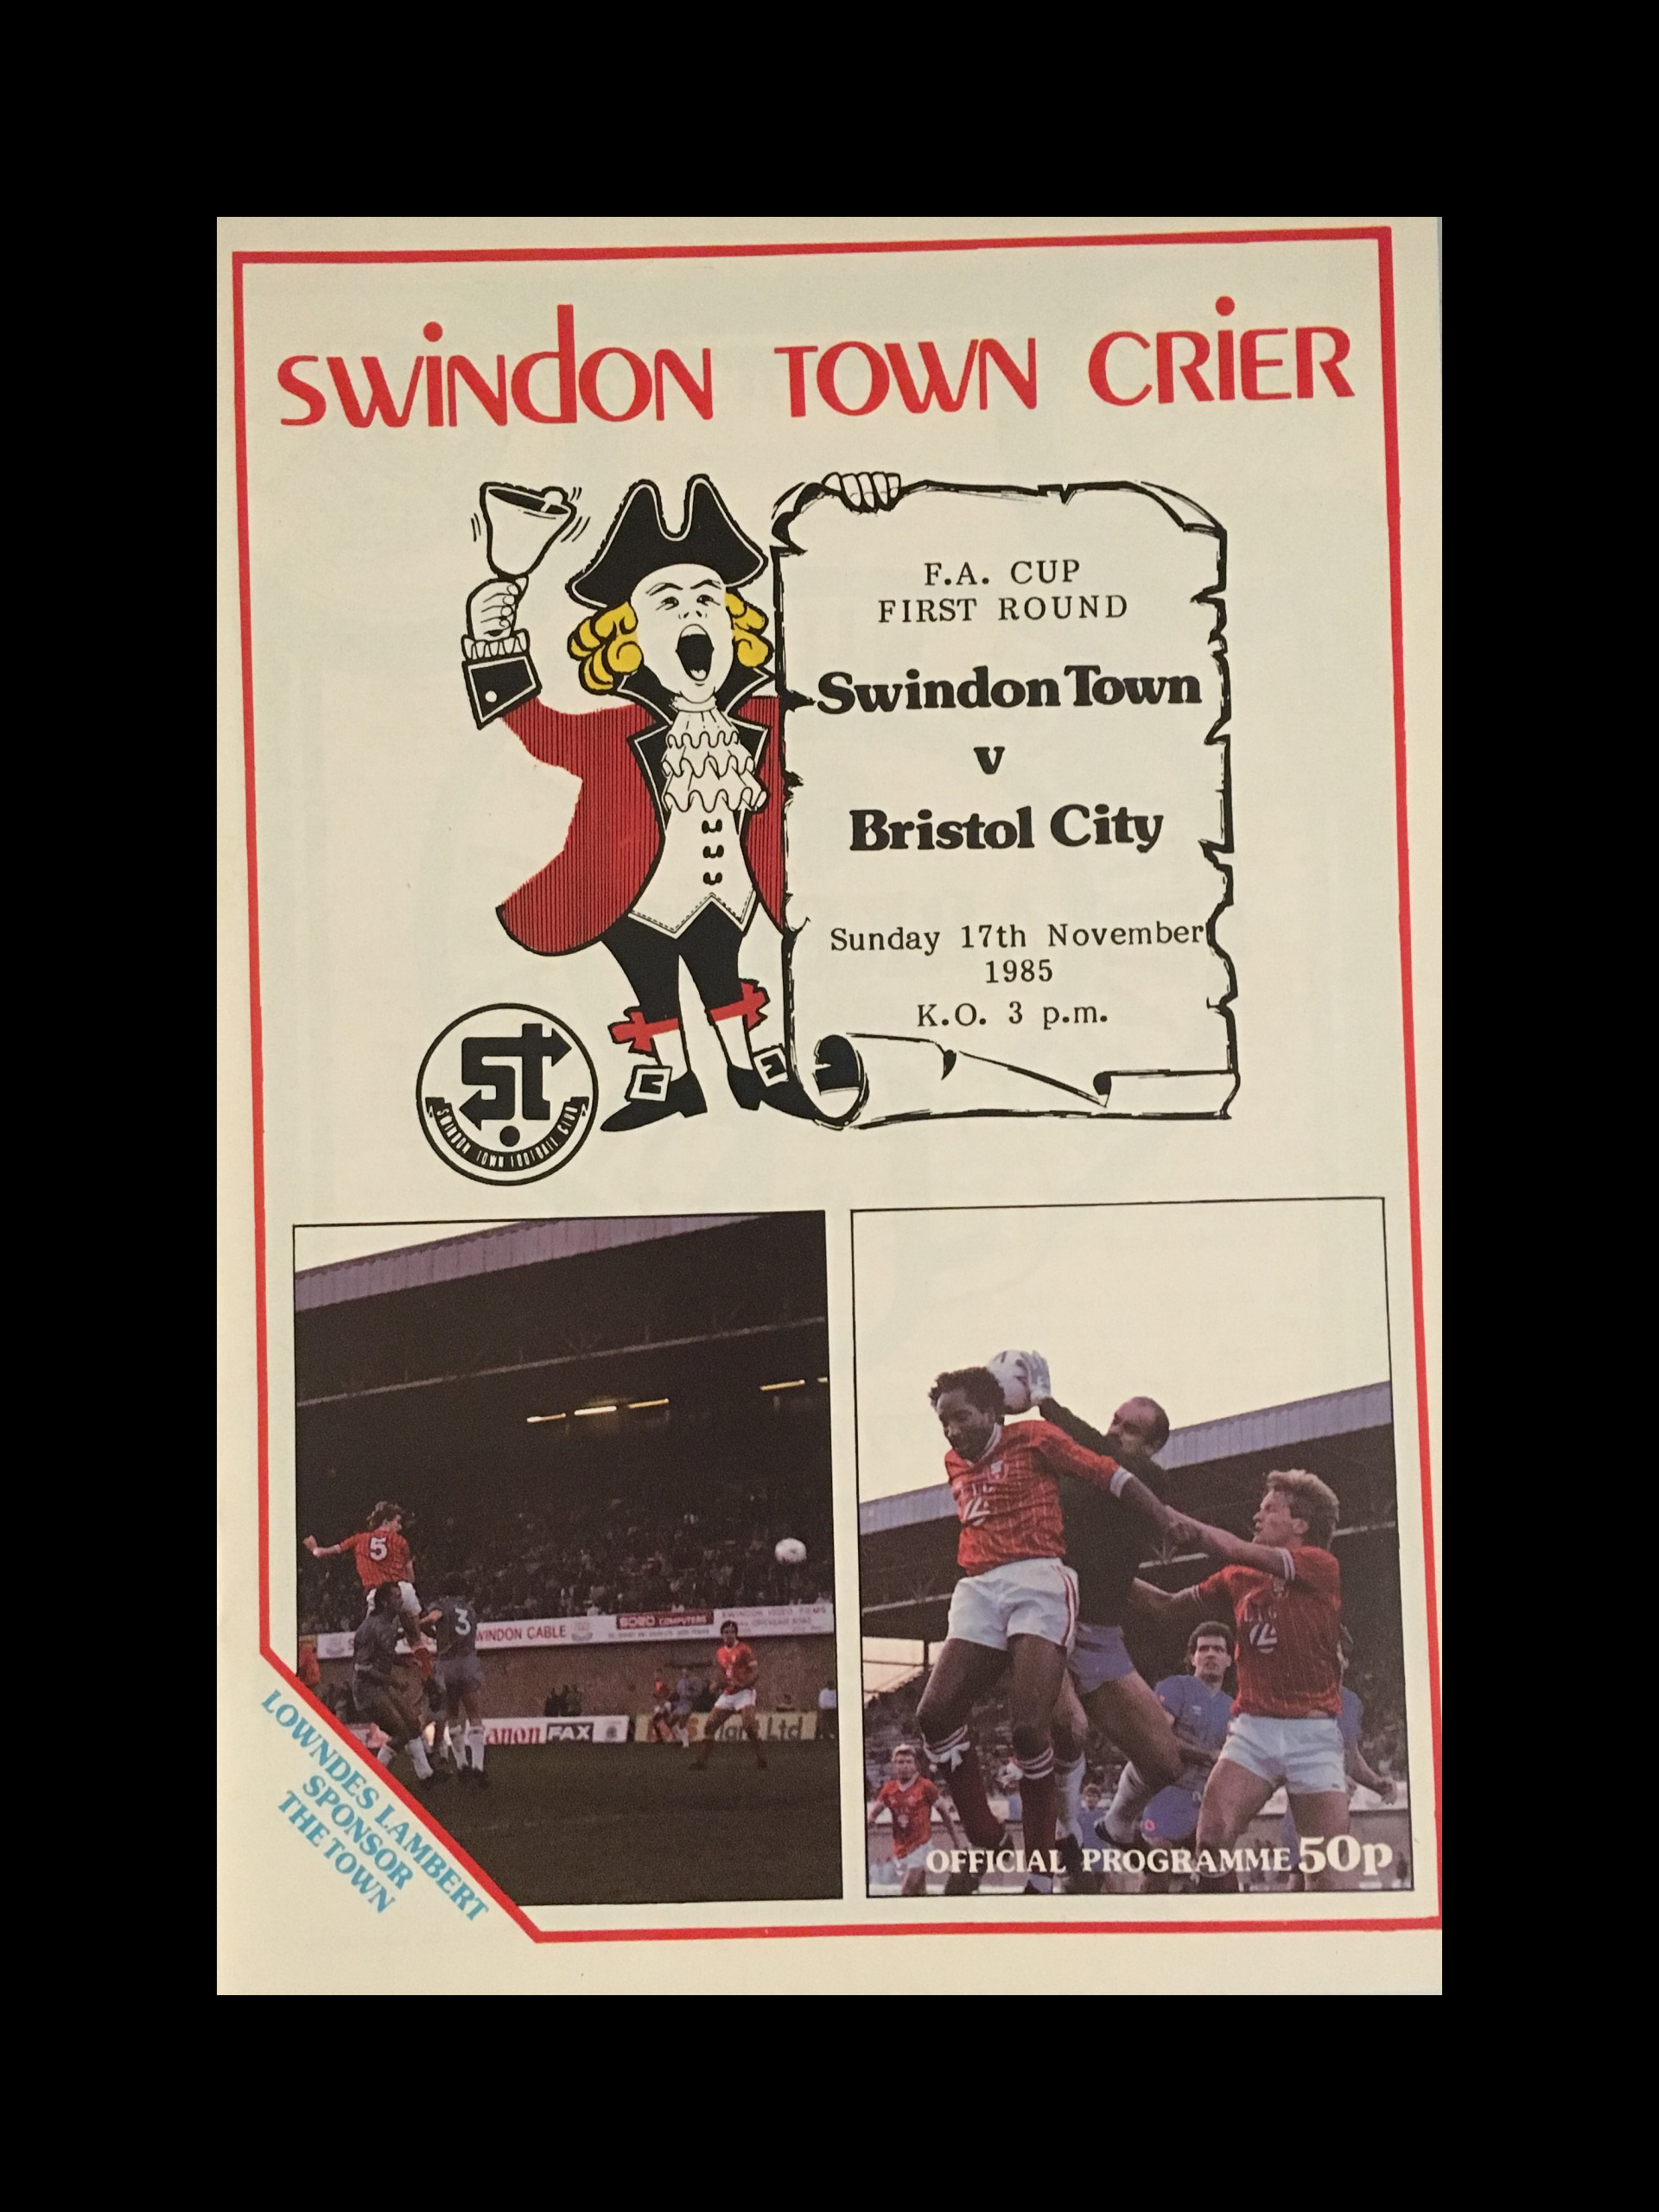 Swindon Town v Bristol City 17-11-85 Programme